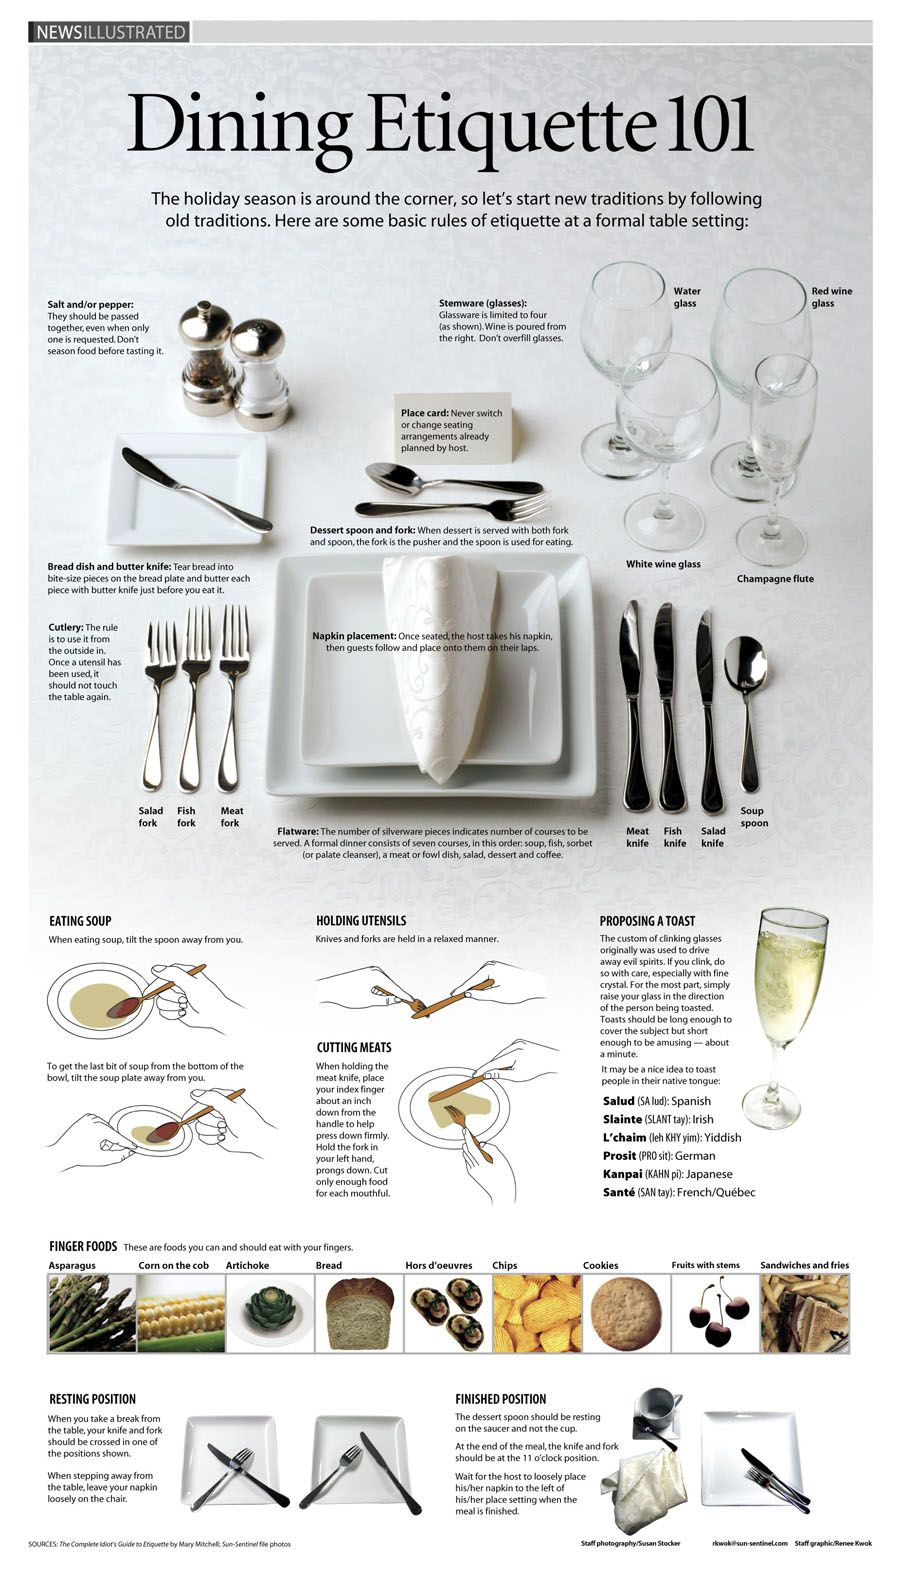 Fine Dining Etiquette - Which Knife and Fork to Use. Dinning EtiquetteEtiquette DinnerTable Setting ...  sc 1 st  Pinterest & Fine Dining Etiquette - Which Knife and Fork to Use | Dining ...